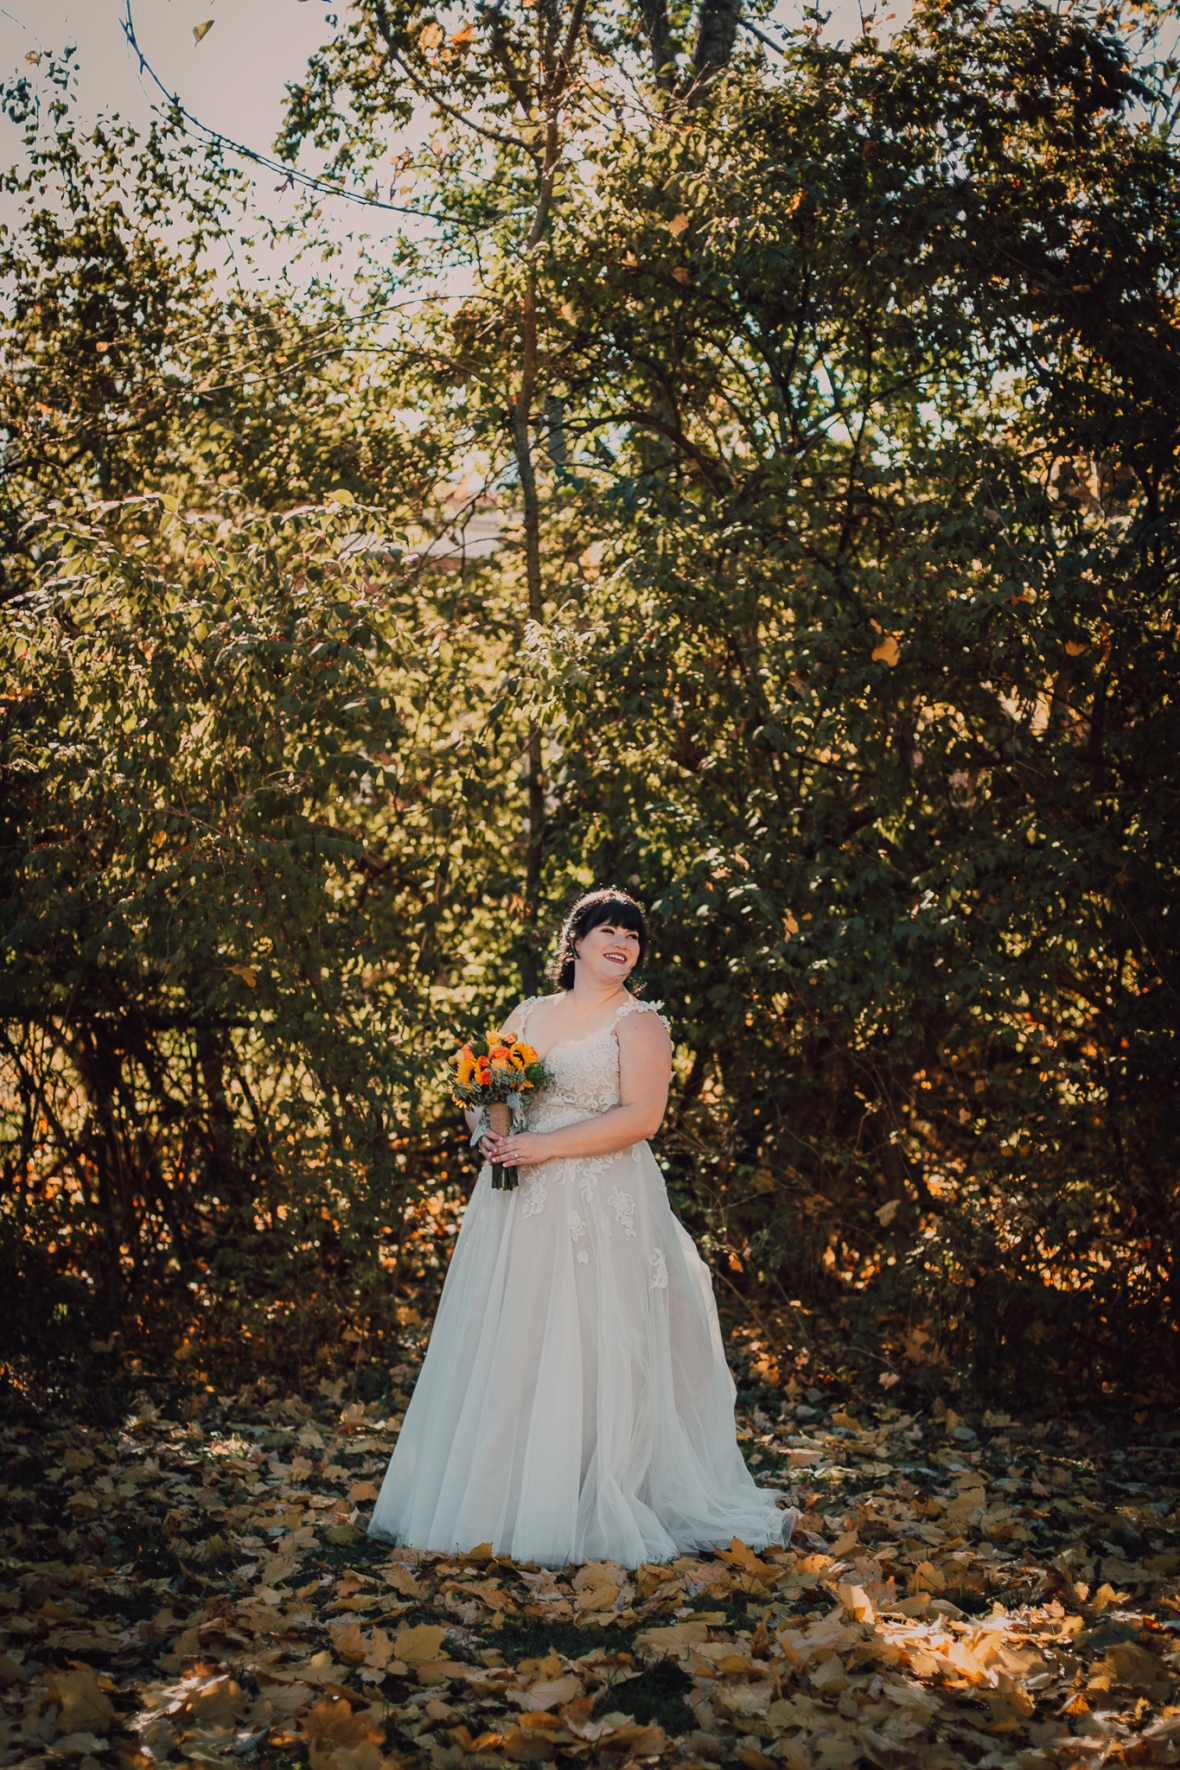 Anchorage Trail Wedding Photos